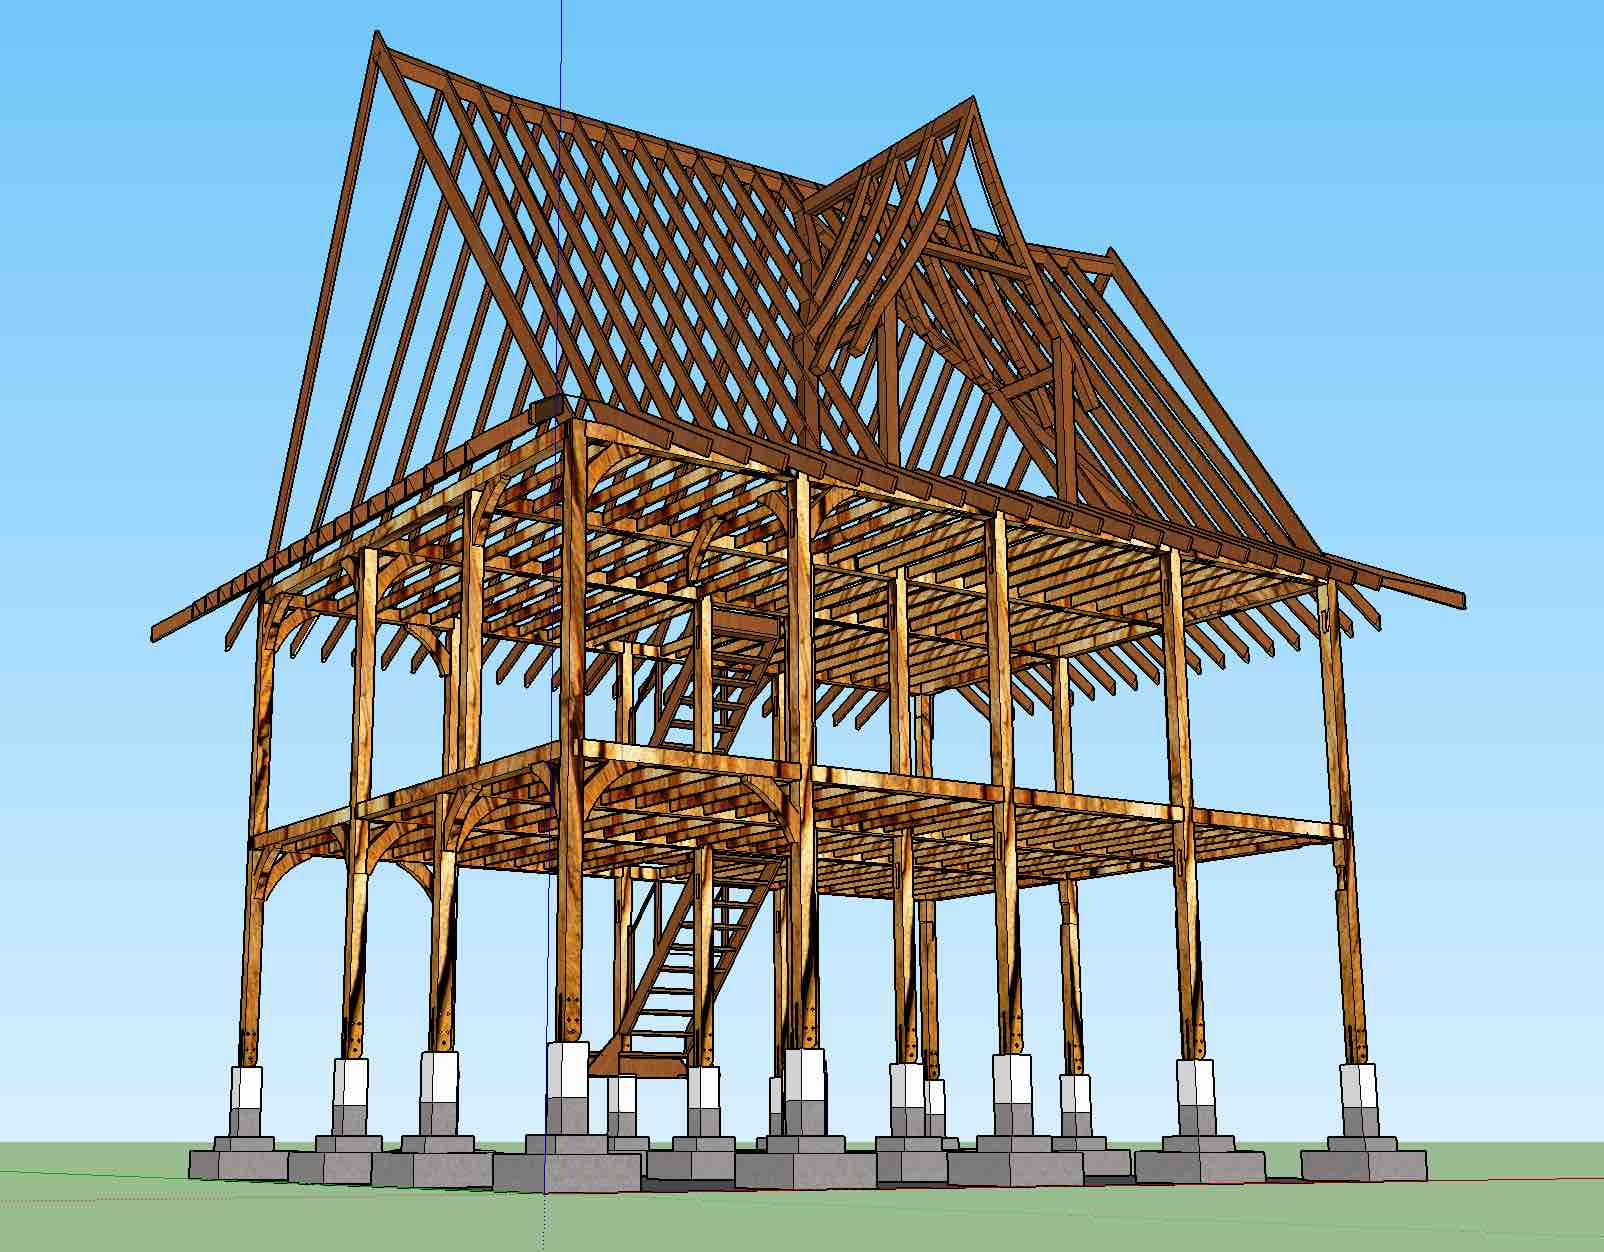 [Thumbnail for Framing1.jpg]. Timber Frame using Eucalyptus Camaldulensis